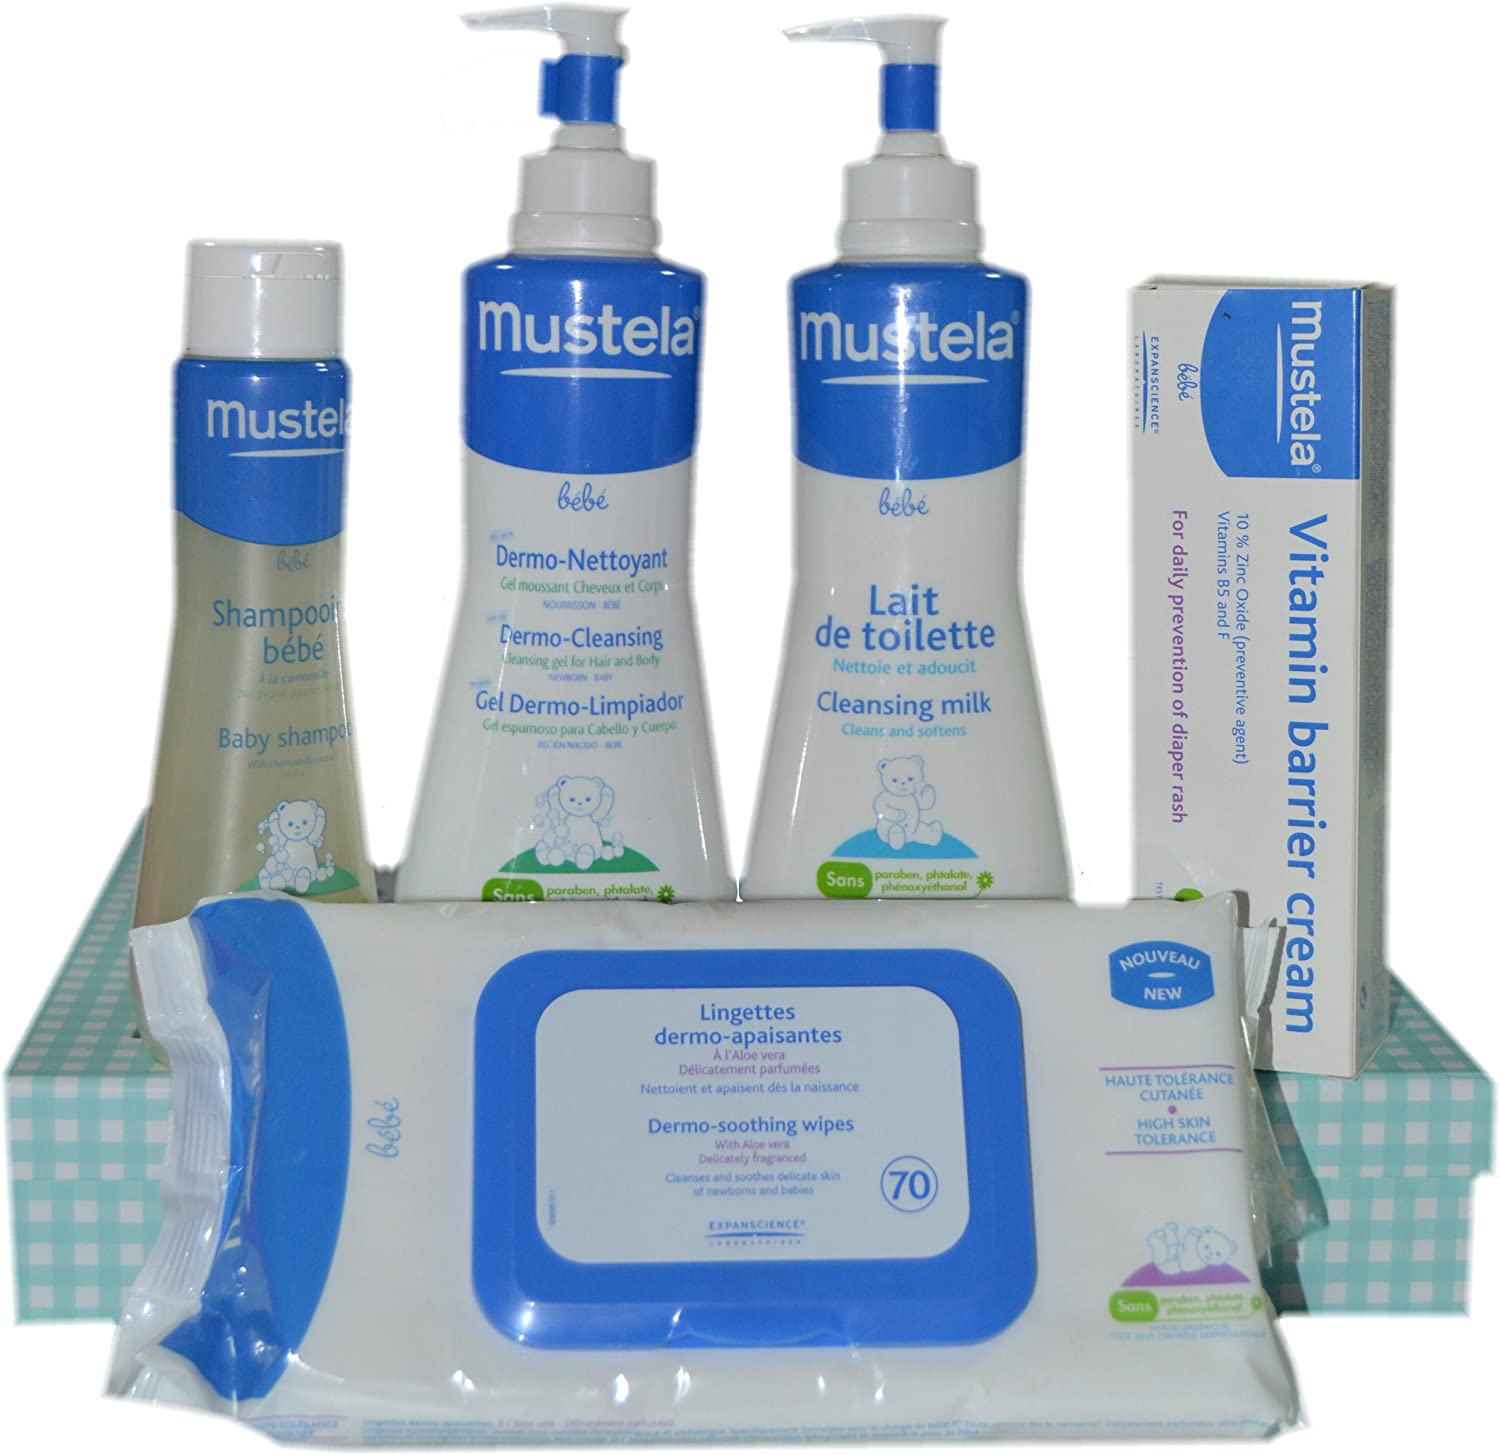 Pack Mustela 5 uds 500ml: Amazon.es: Bebé